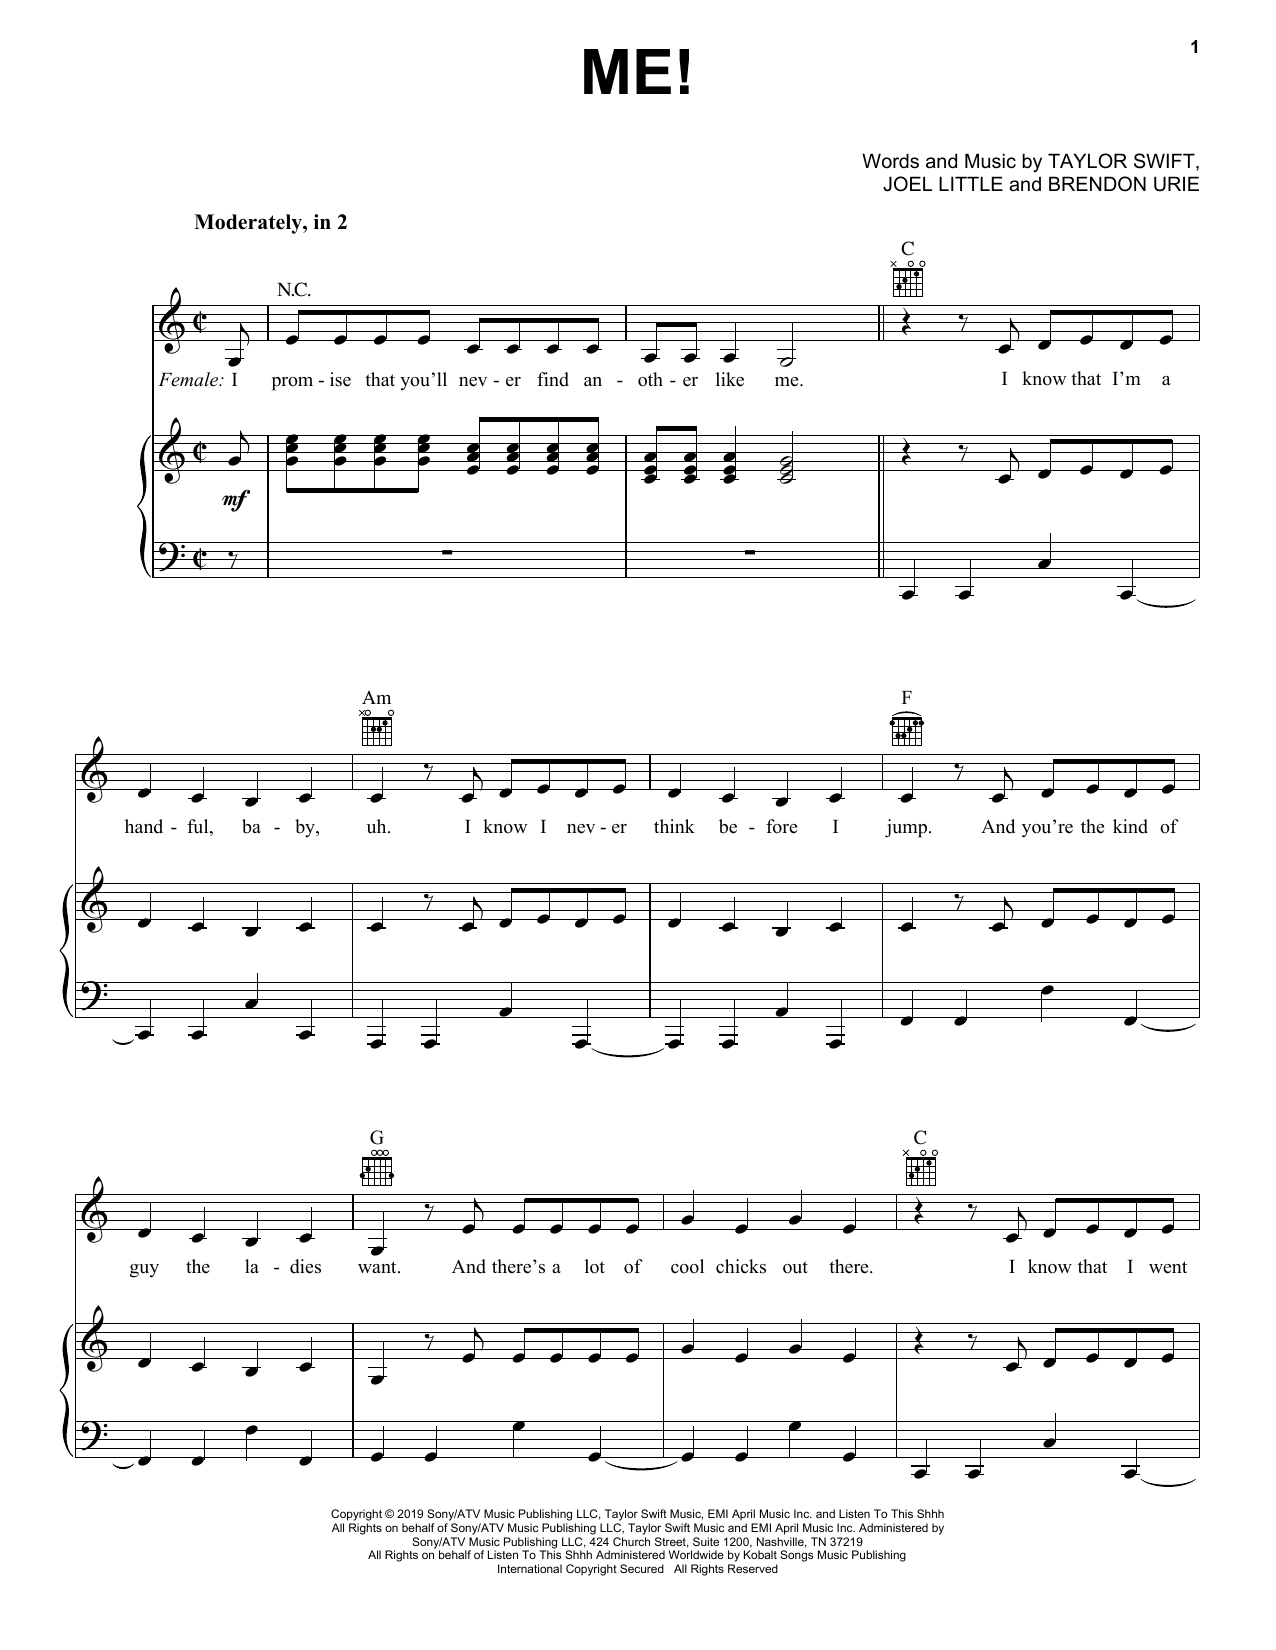 Taylor Swift ME! (feat. Brendon Urie of Panic! At The Disco) sheet music notes and chords. Download Printable PDF.